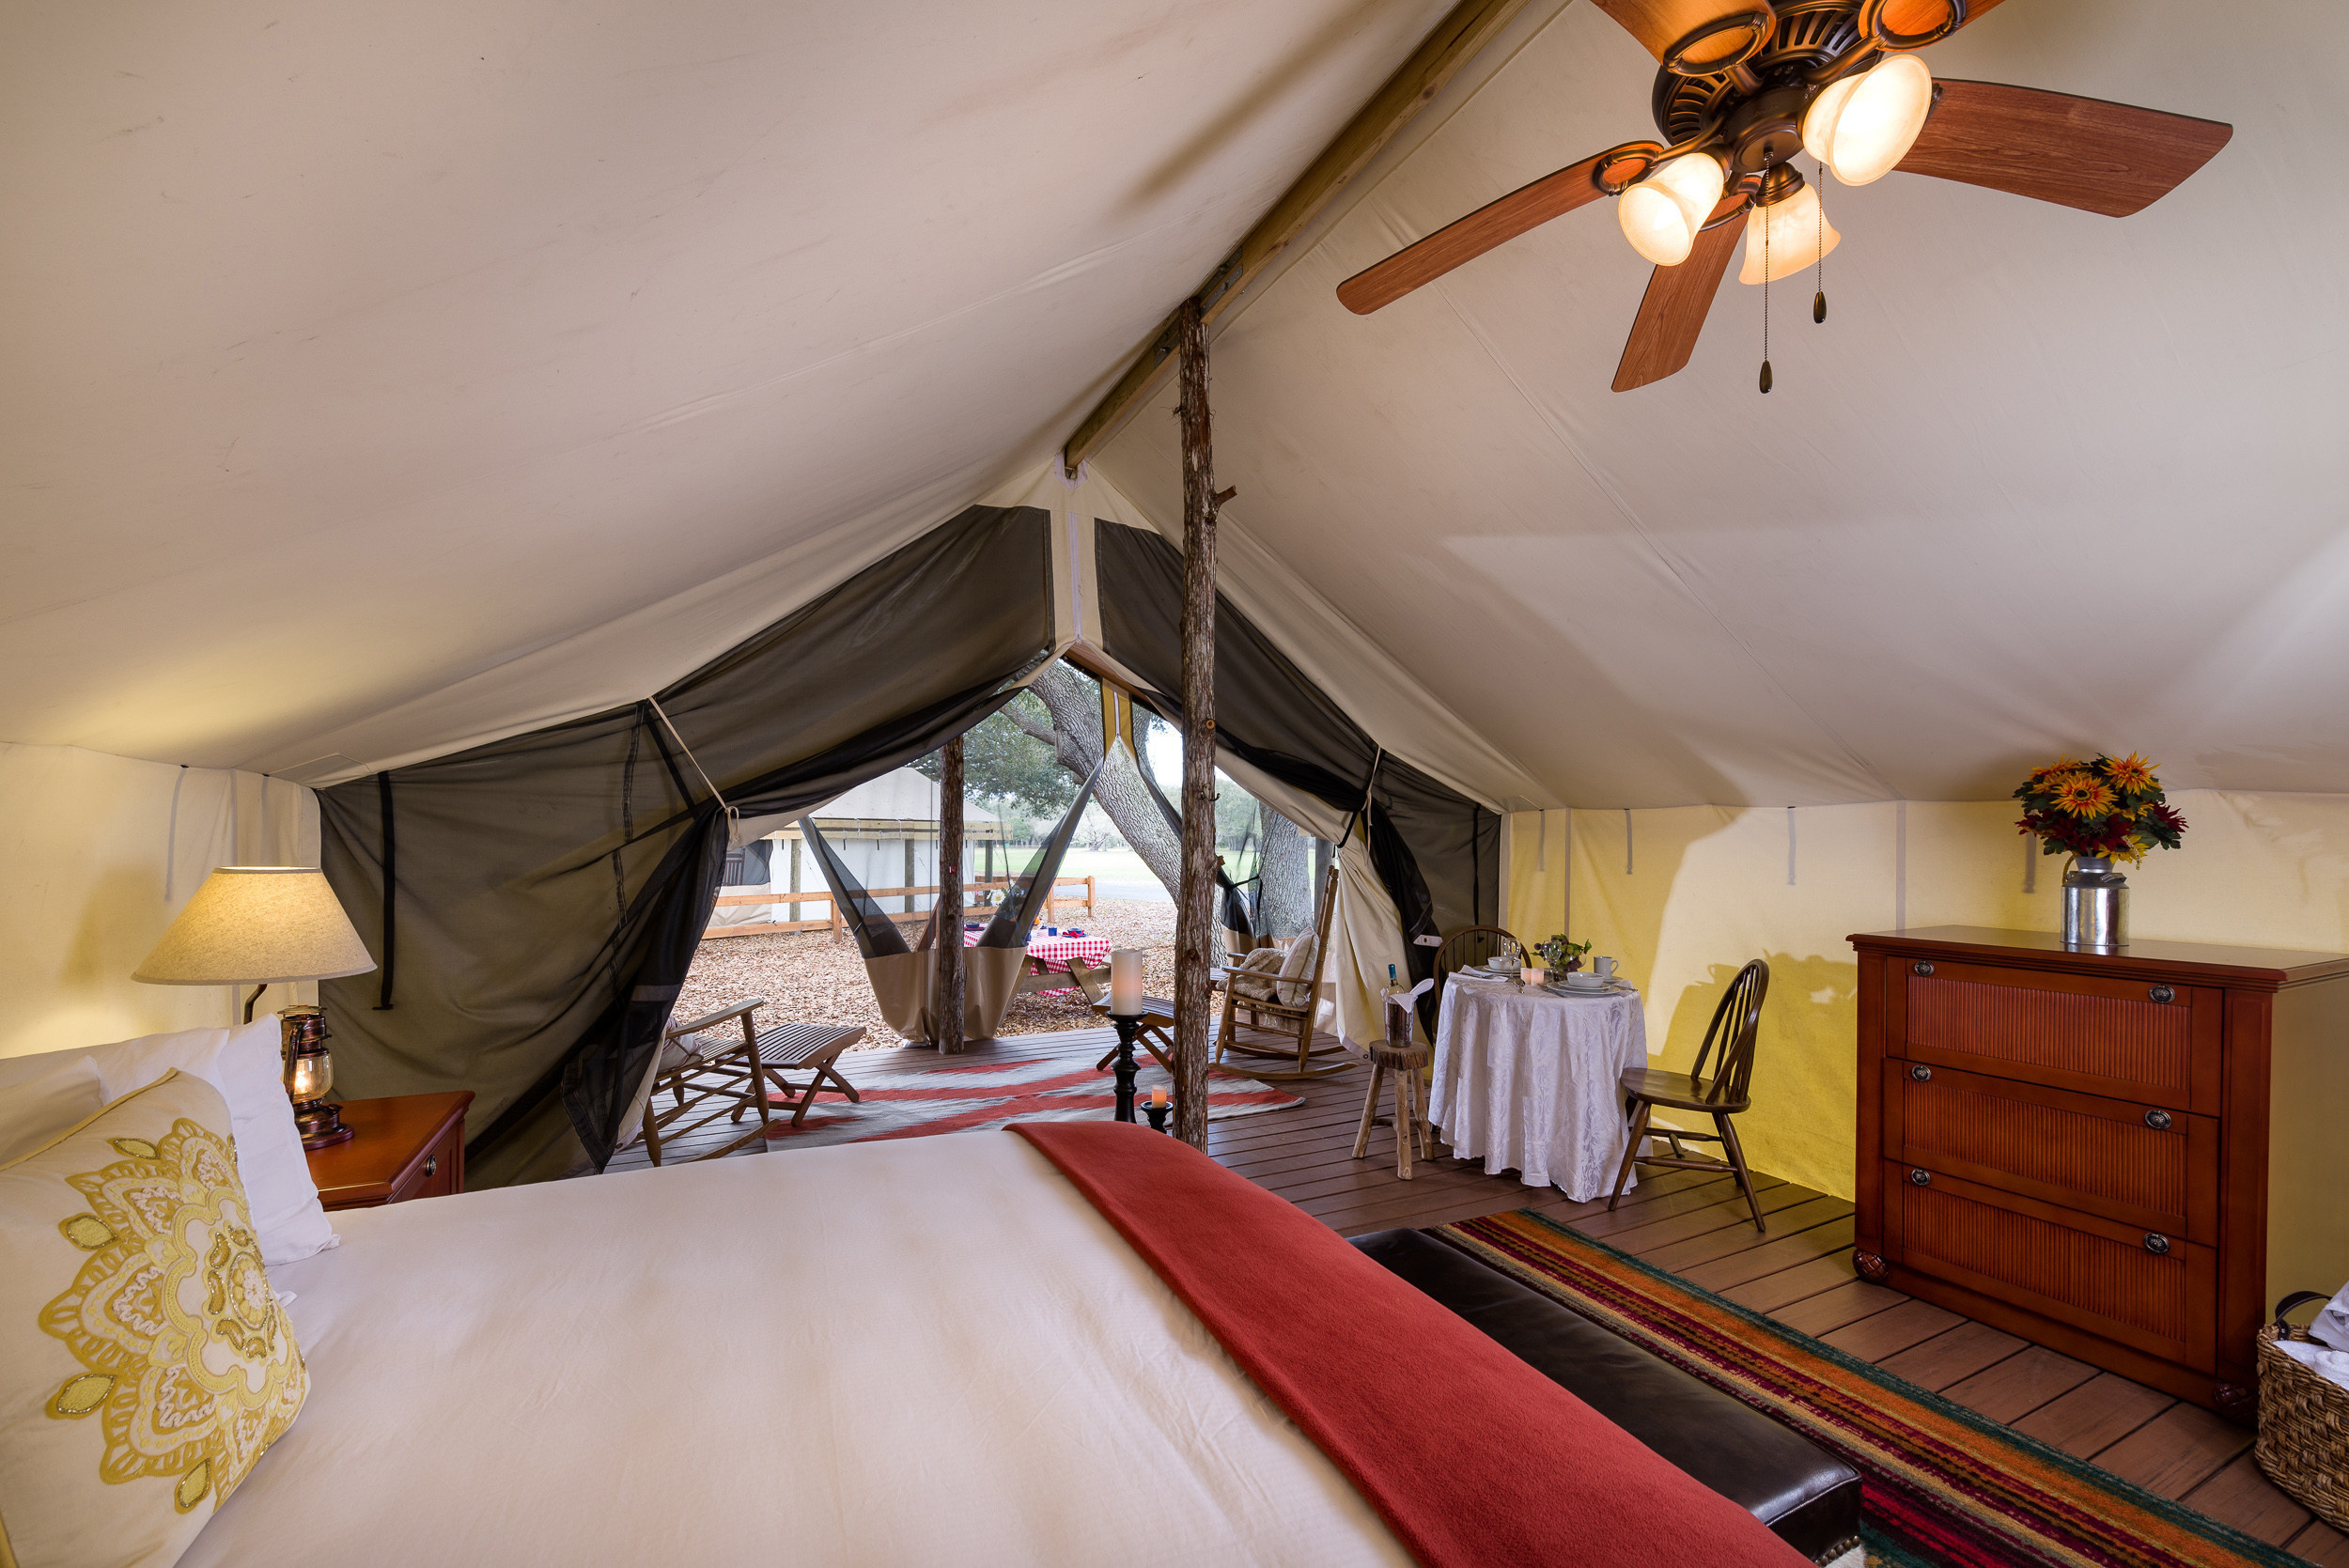 Interior of Glamping tent with King Bed | Westgate River Ranch Resort & Rodeo